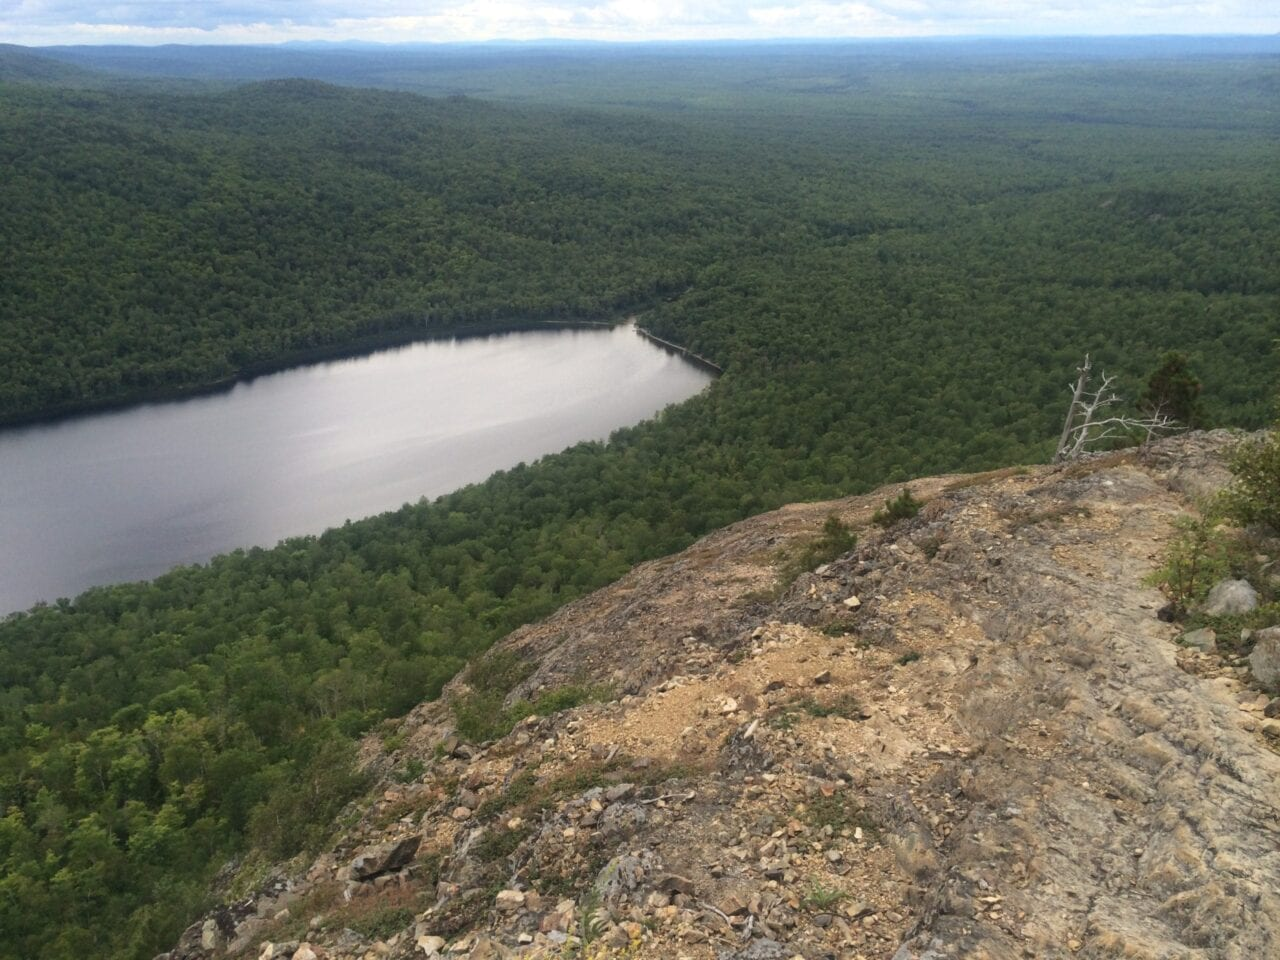 A rocky ridge offers views of a distant lake.